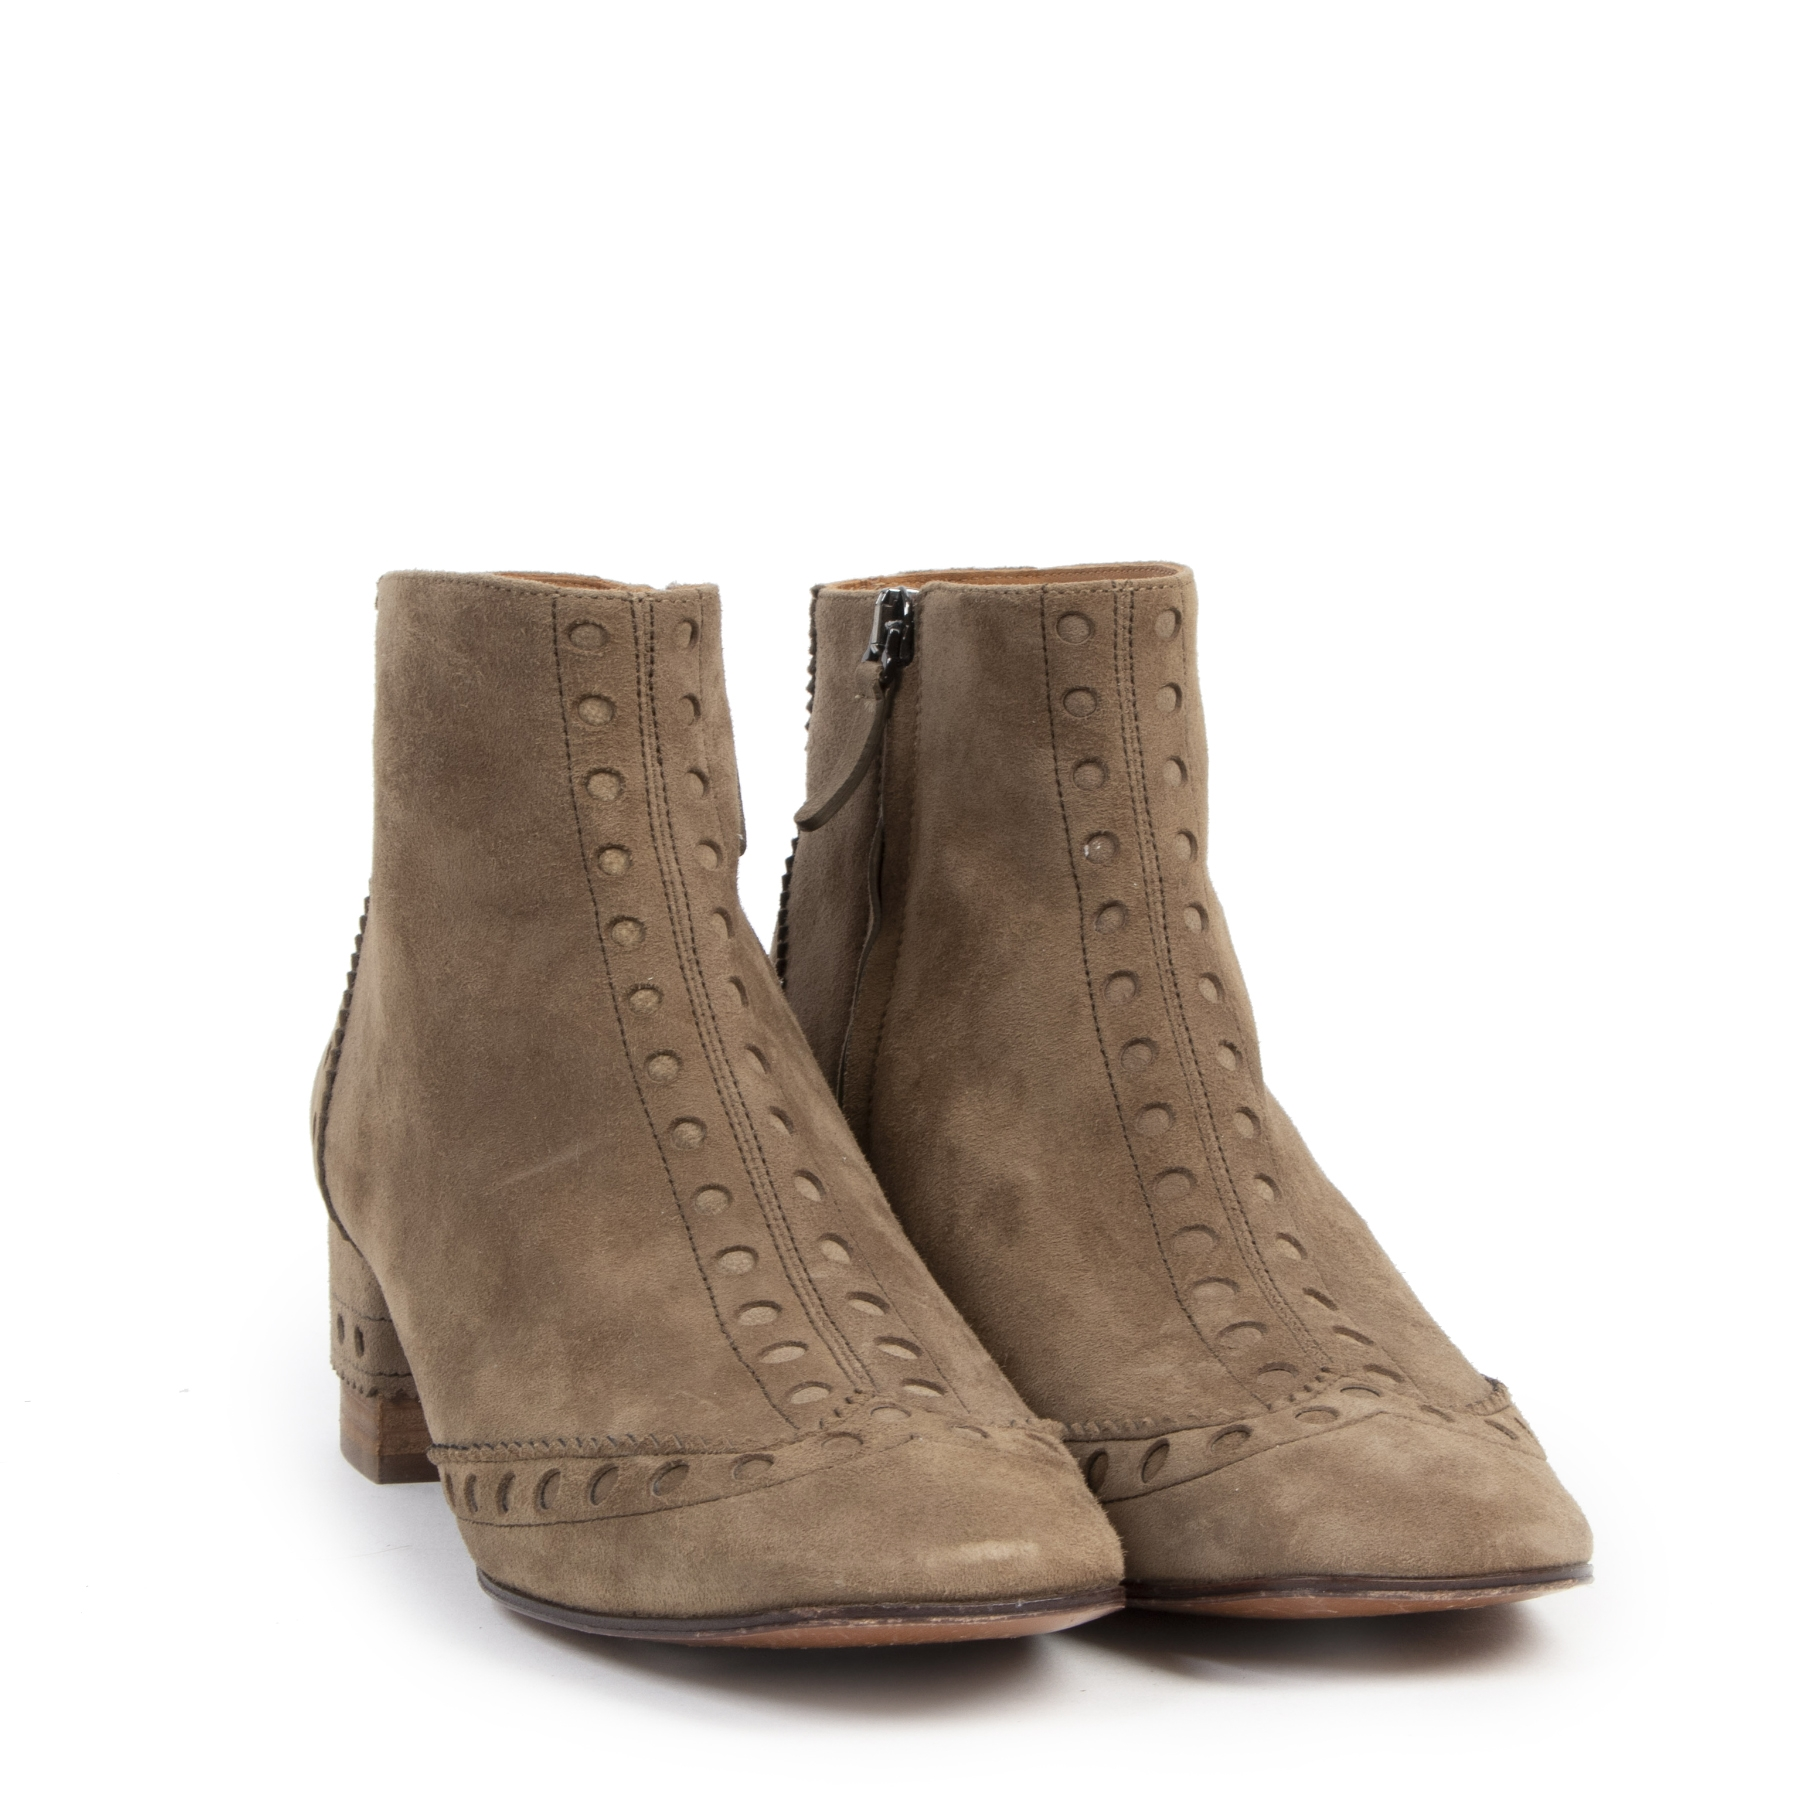 Authentic Secondhand Chloé Perry Suede Ankle Boots - Size 38,5 designer shoes luxury vintage webshop fashion safe secure online shopping designer high end brands